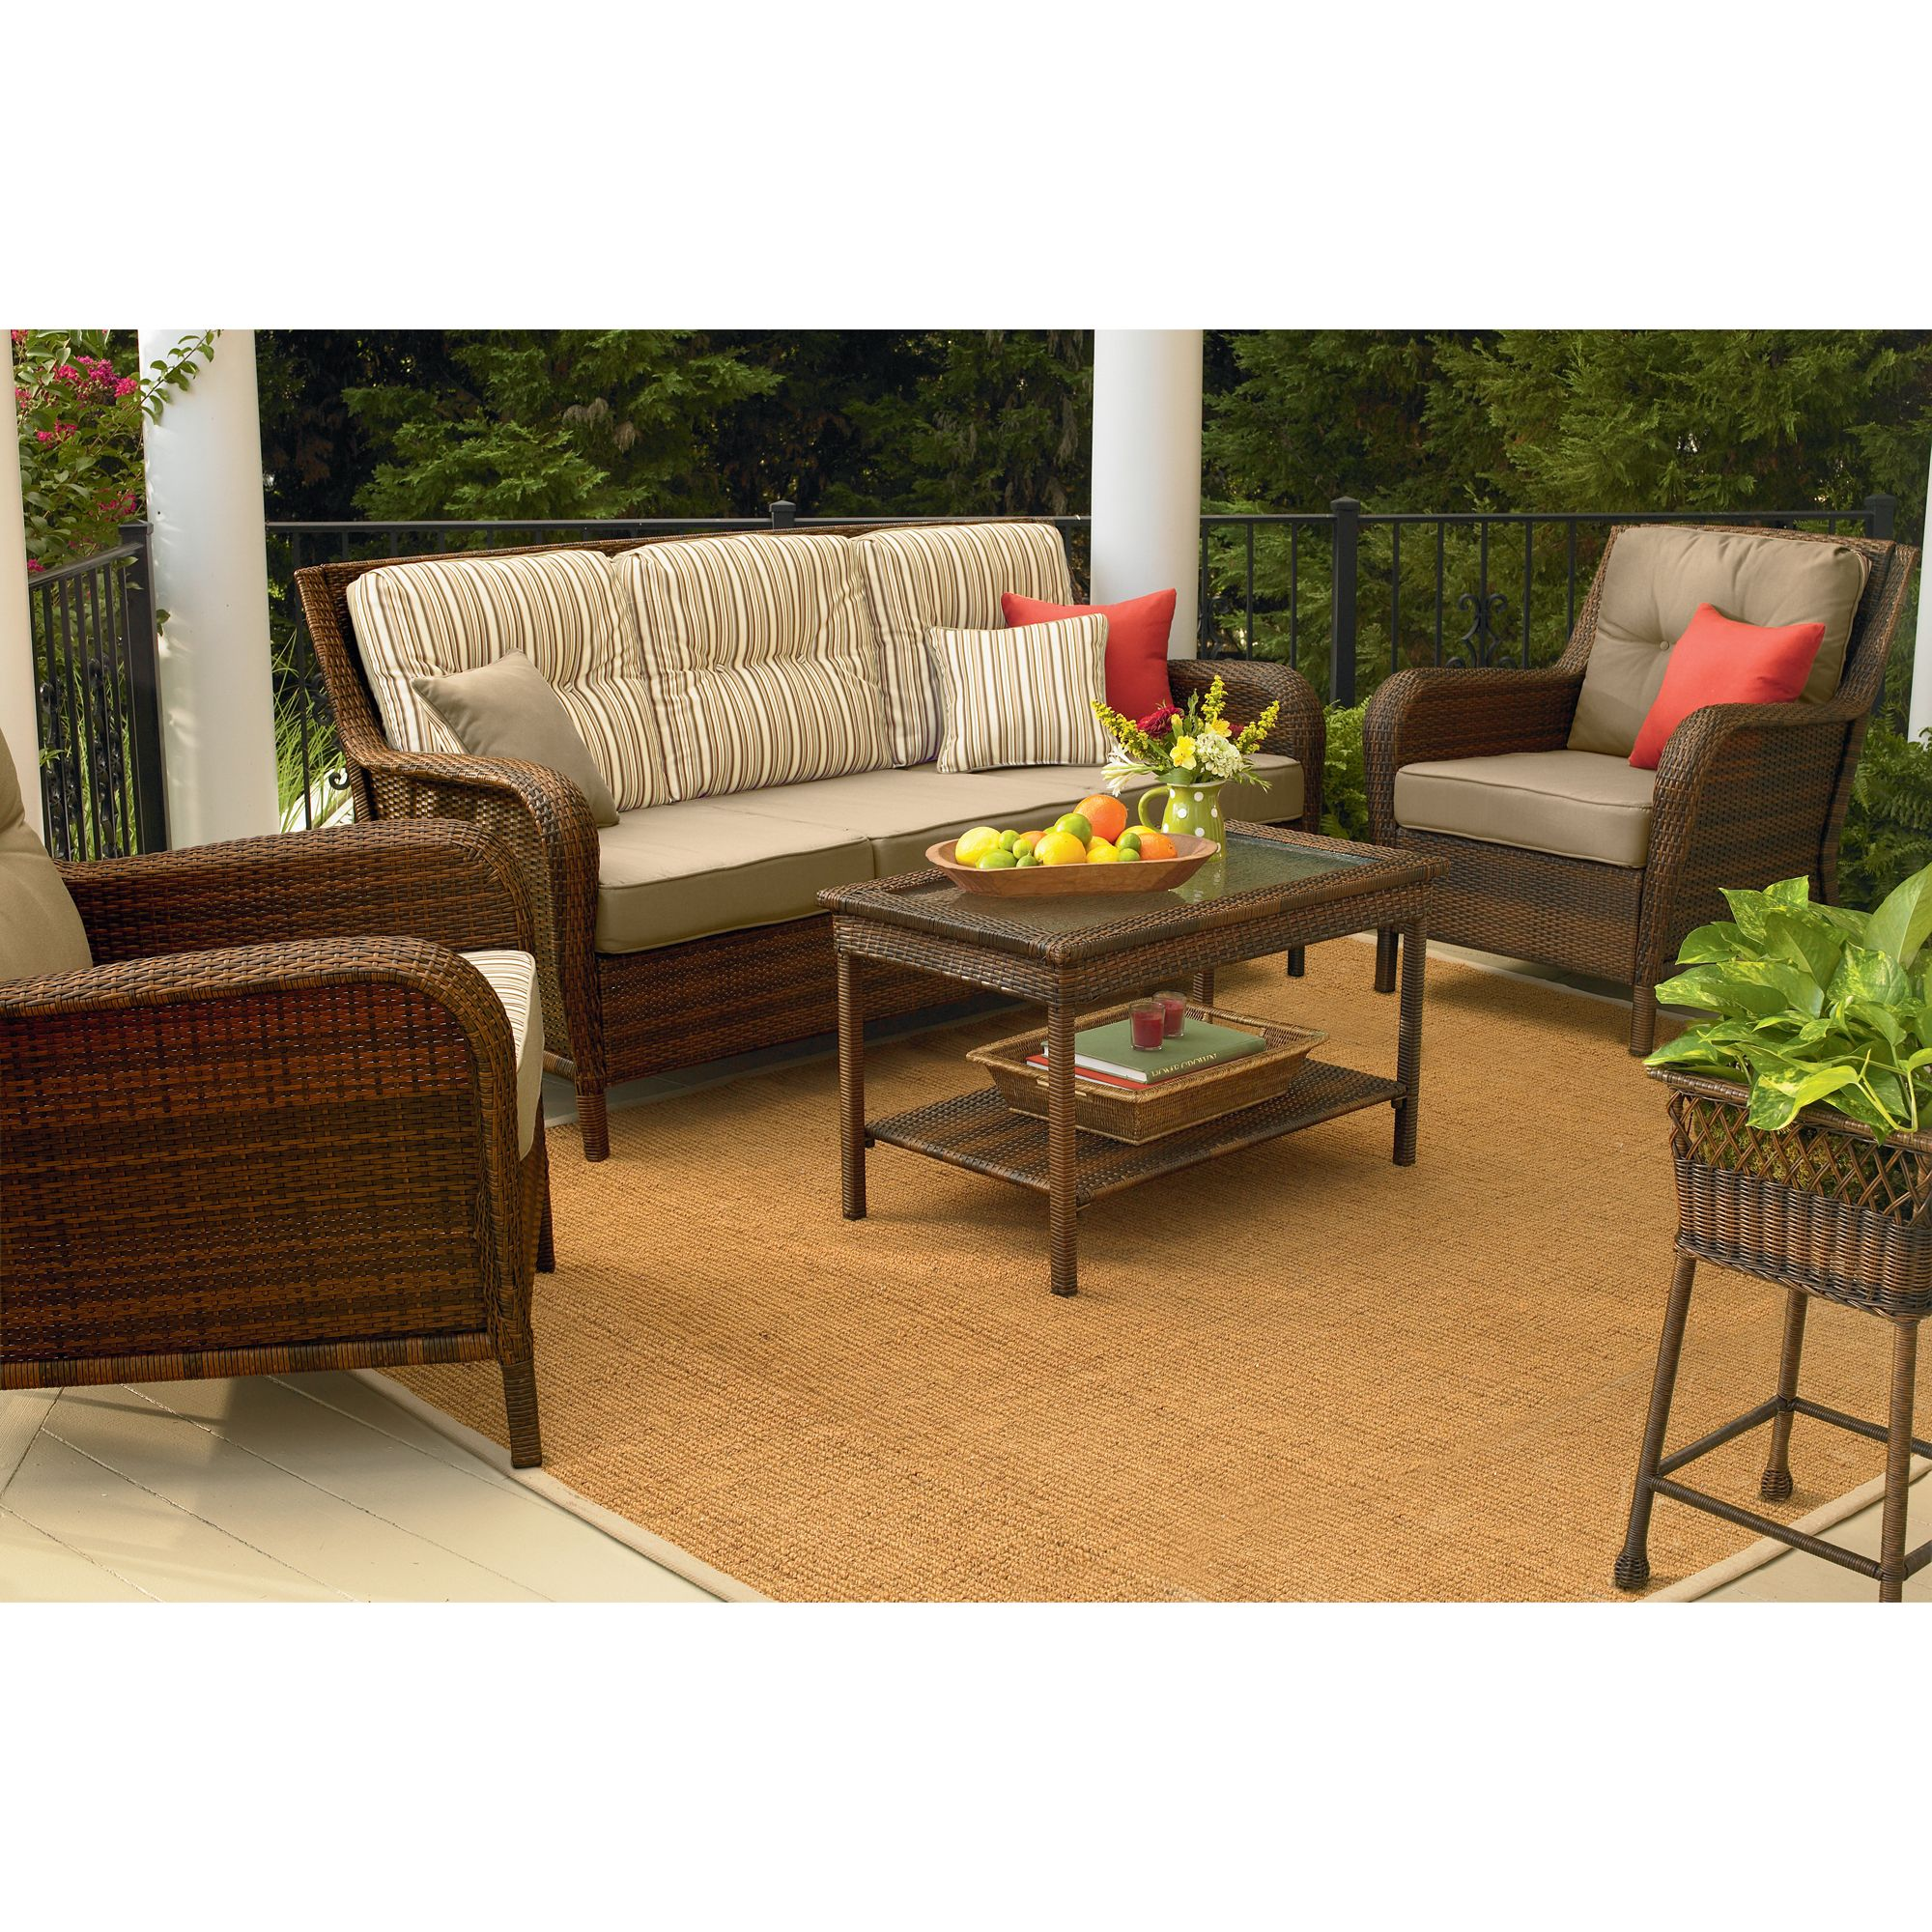 sears outdoor sectional sofa modern tufted leather mayfield wicker patio transform your style